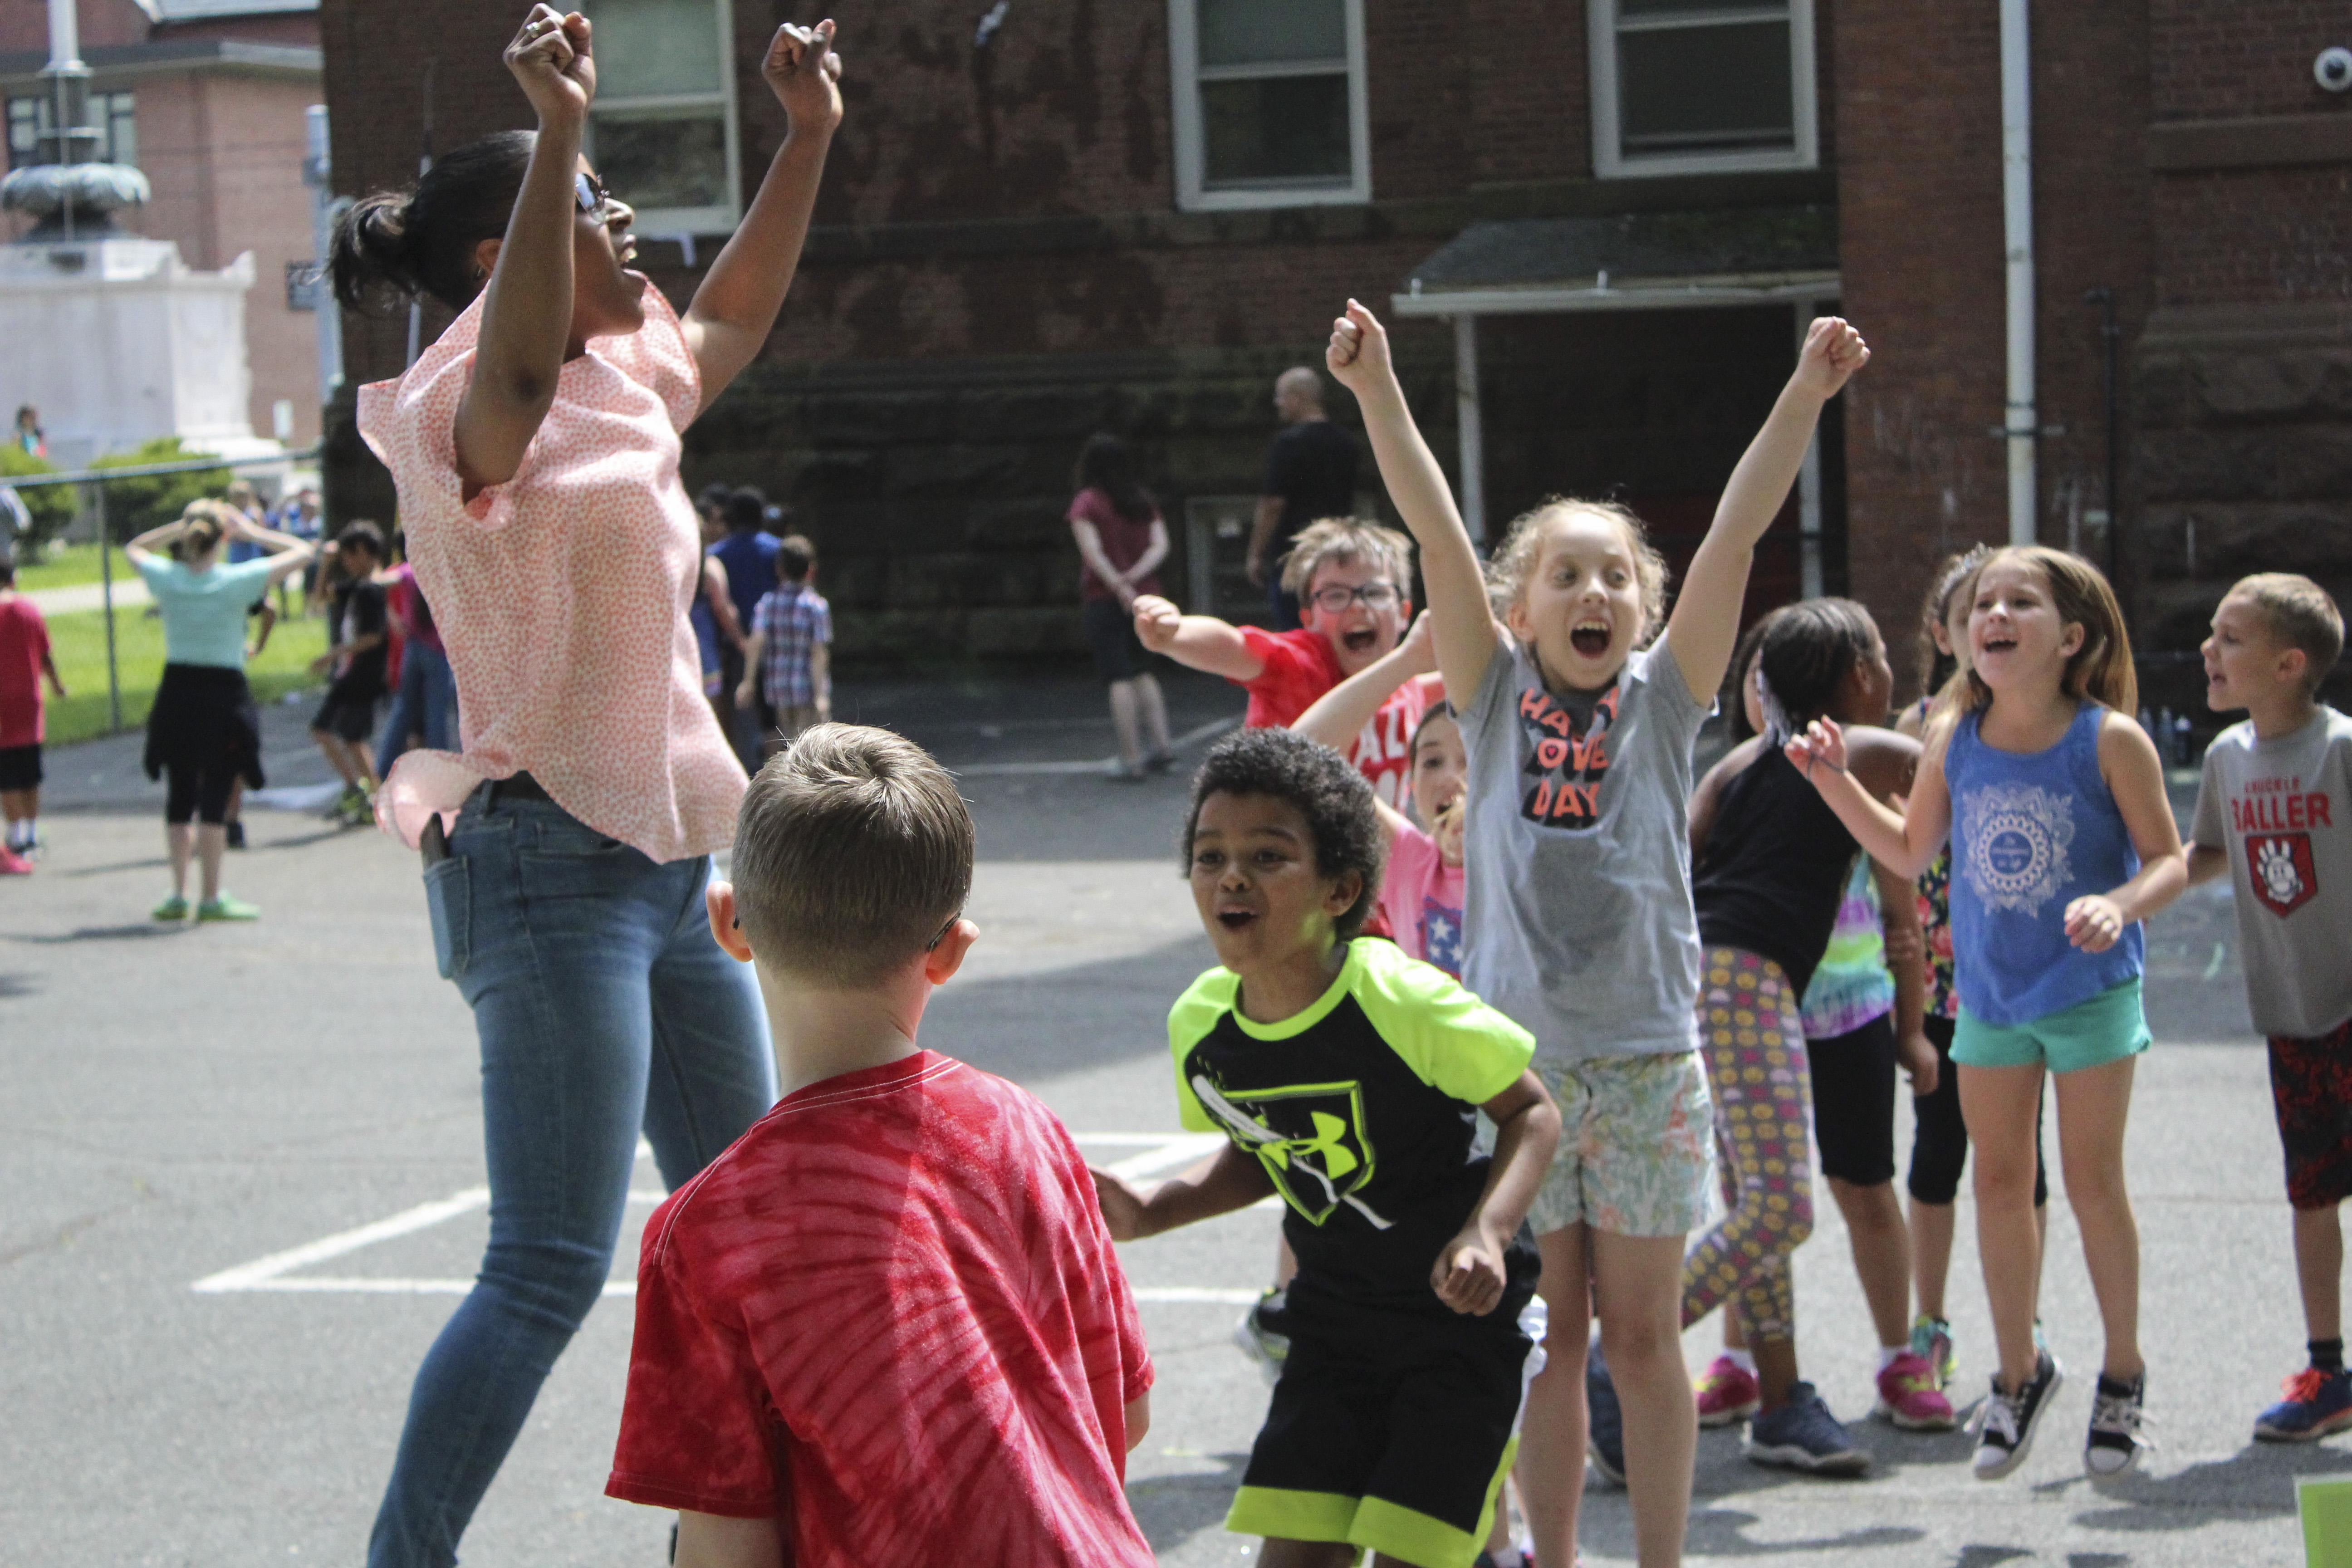 Parent celebrating with students on playground